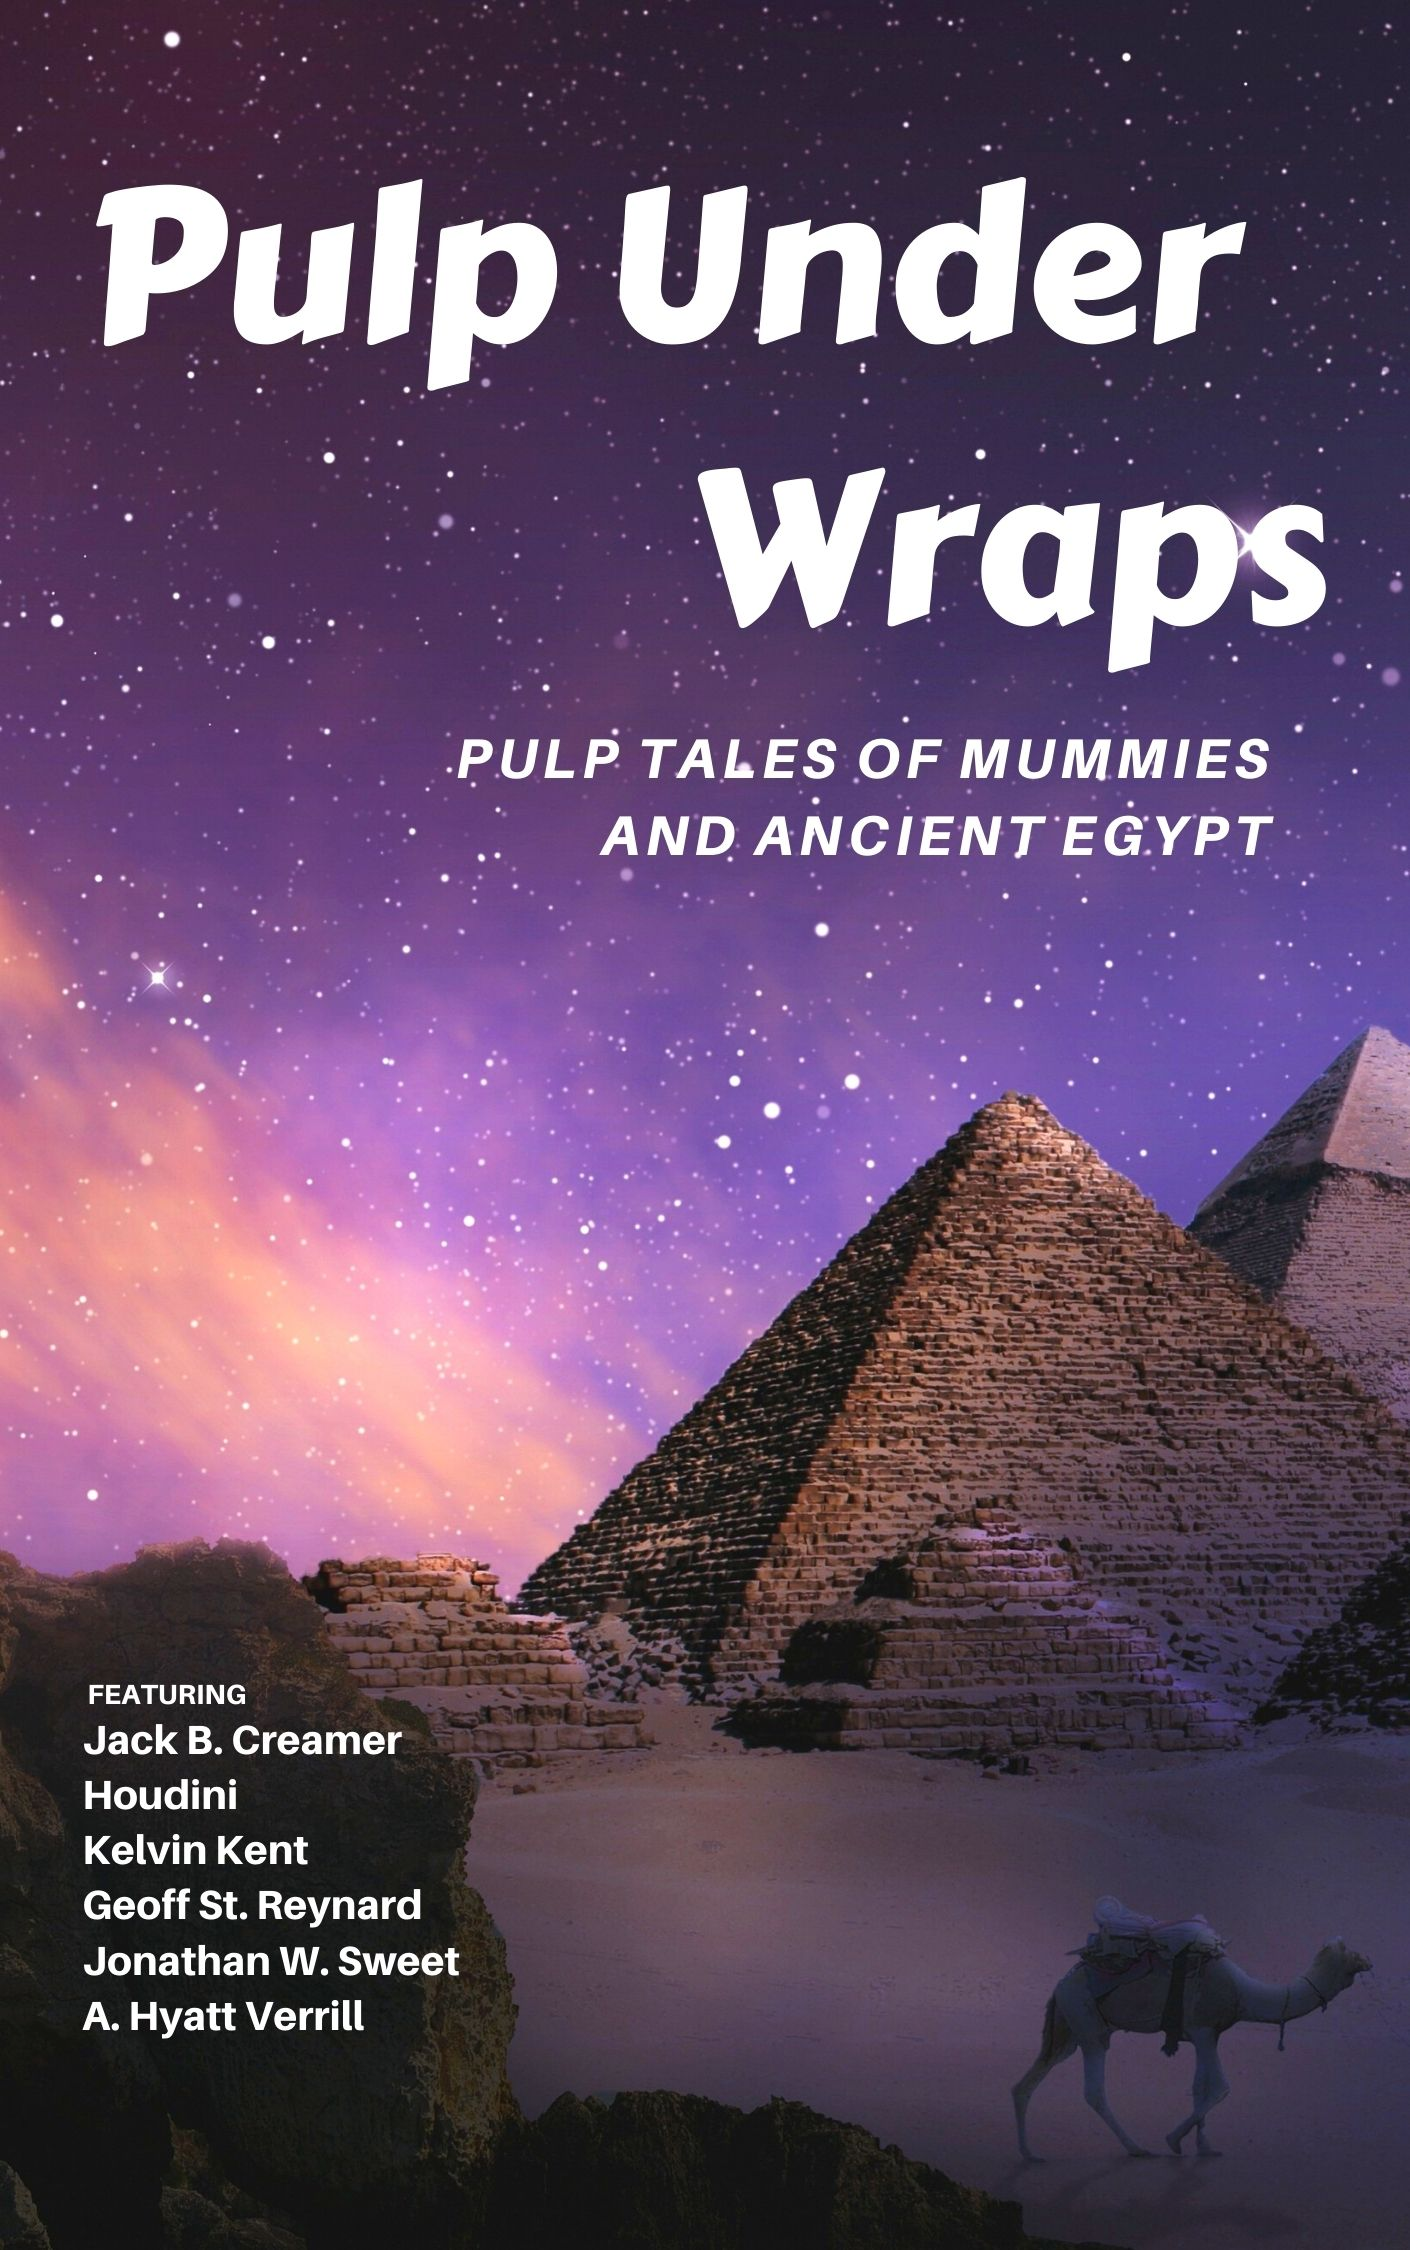 Pulp Under Wraps: Pulp Tales of Mummies and Ancient Egypt